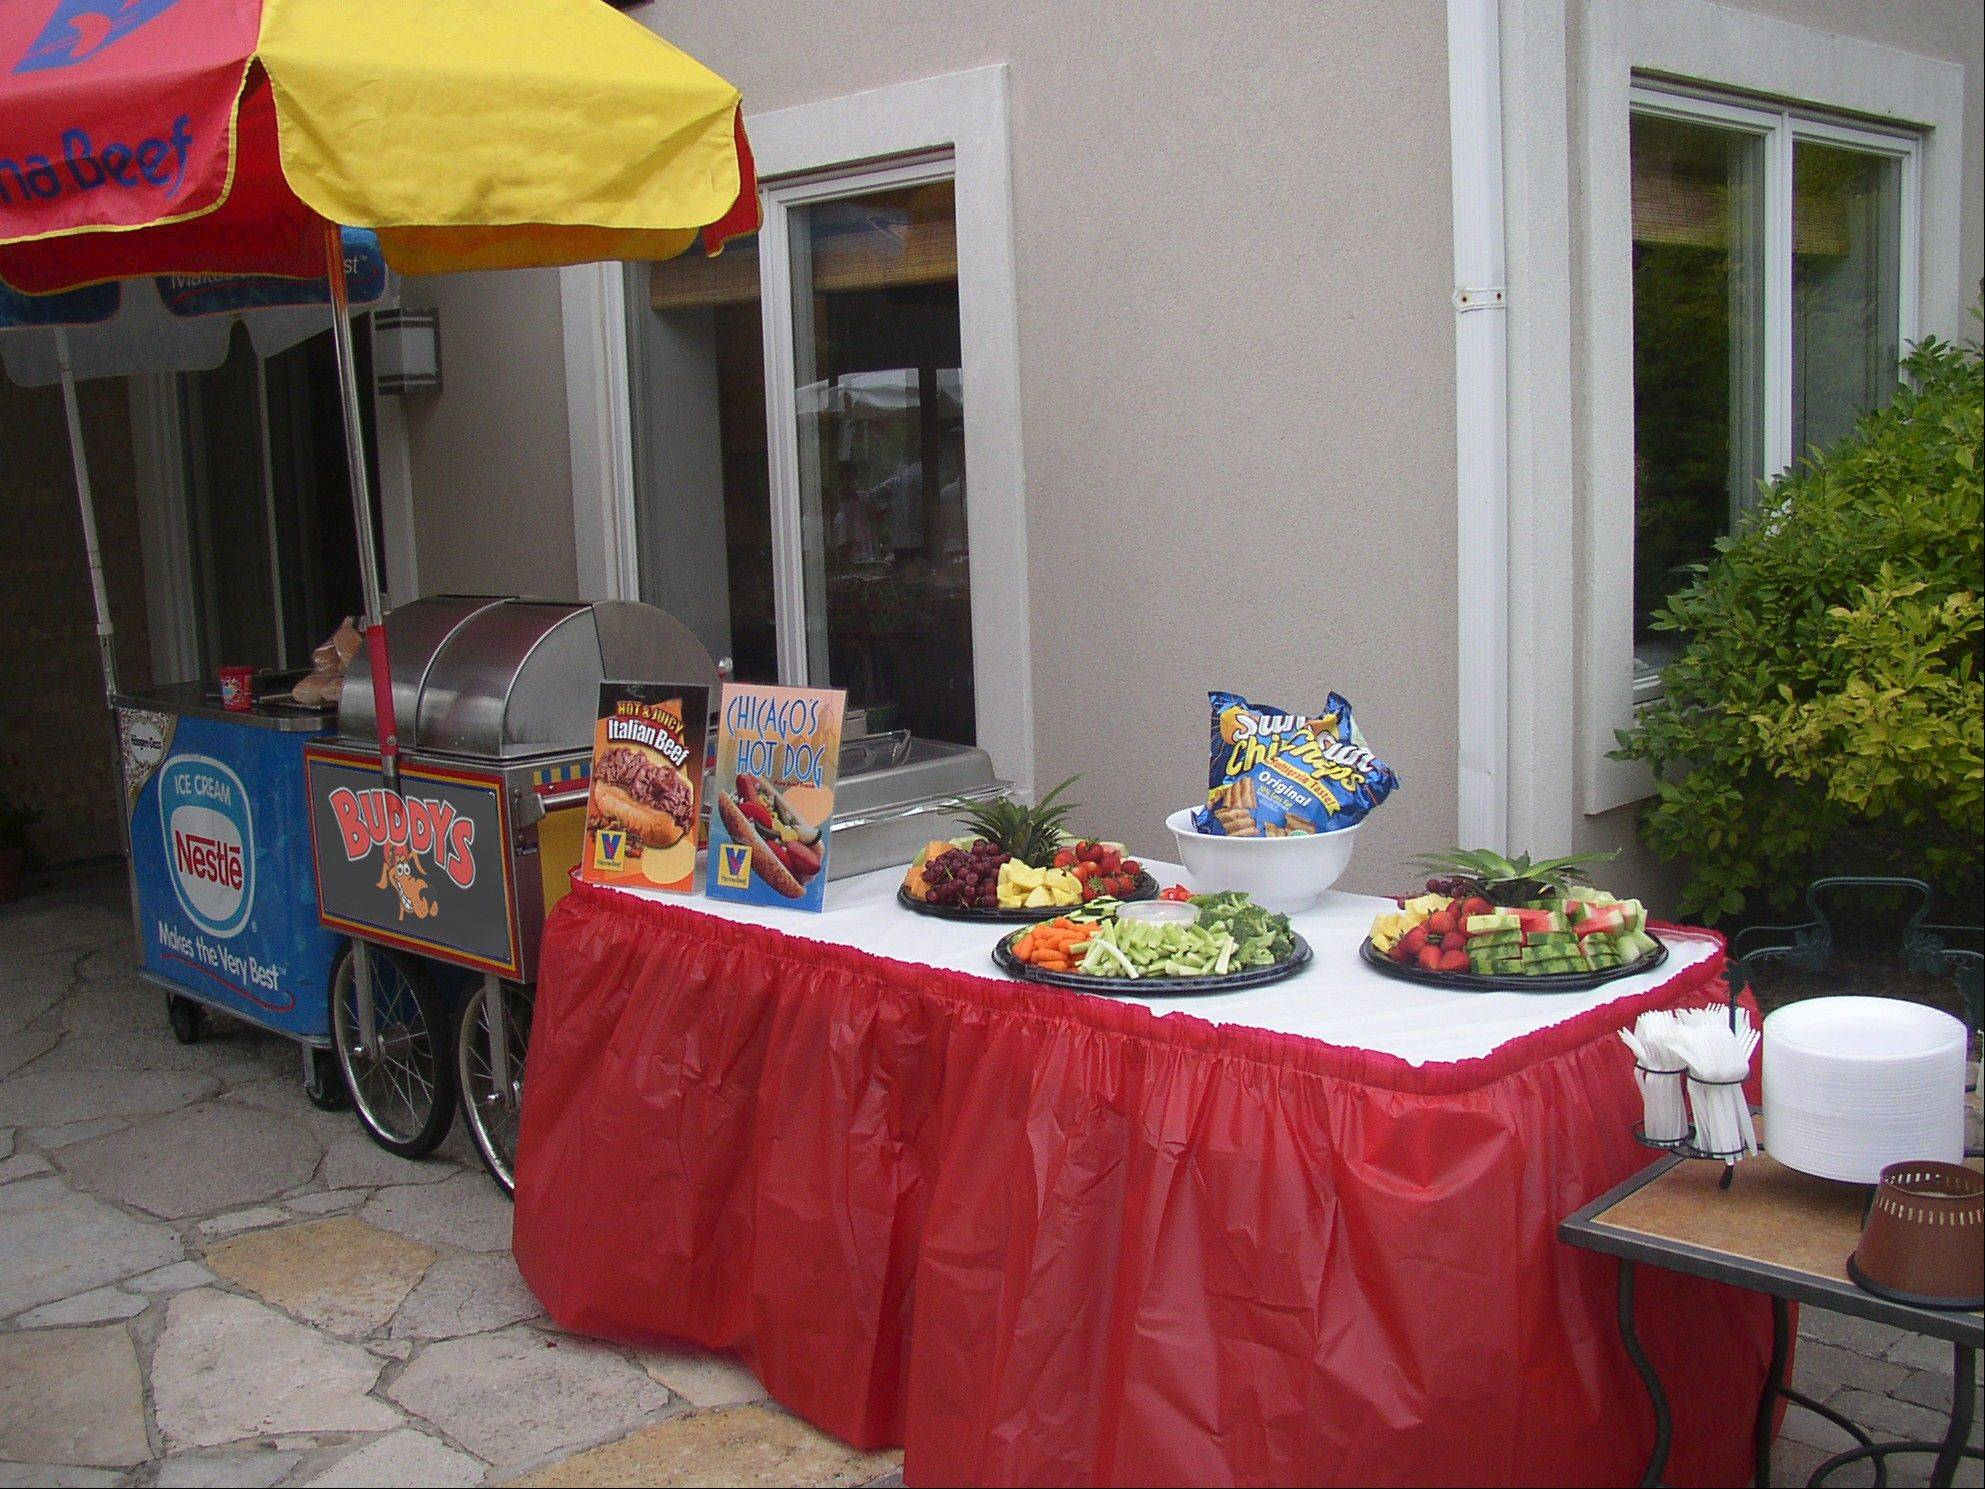 Have a variety of food options at your event, as many guests will have special diets and allergy concerns.